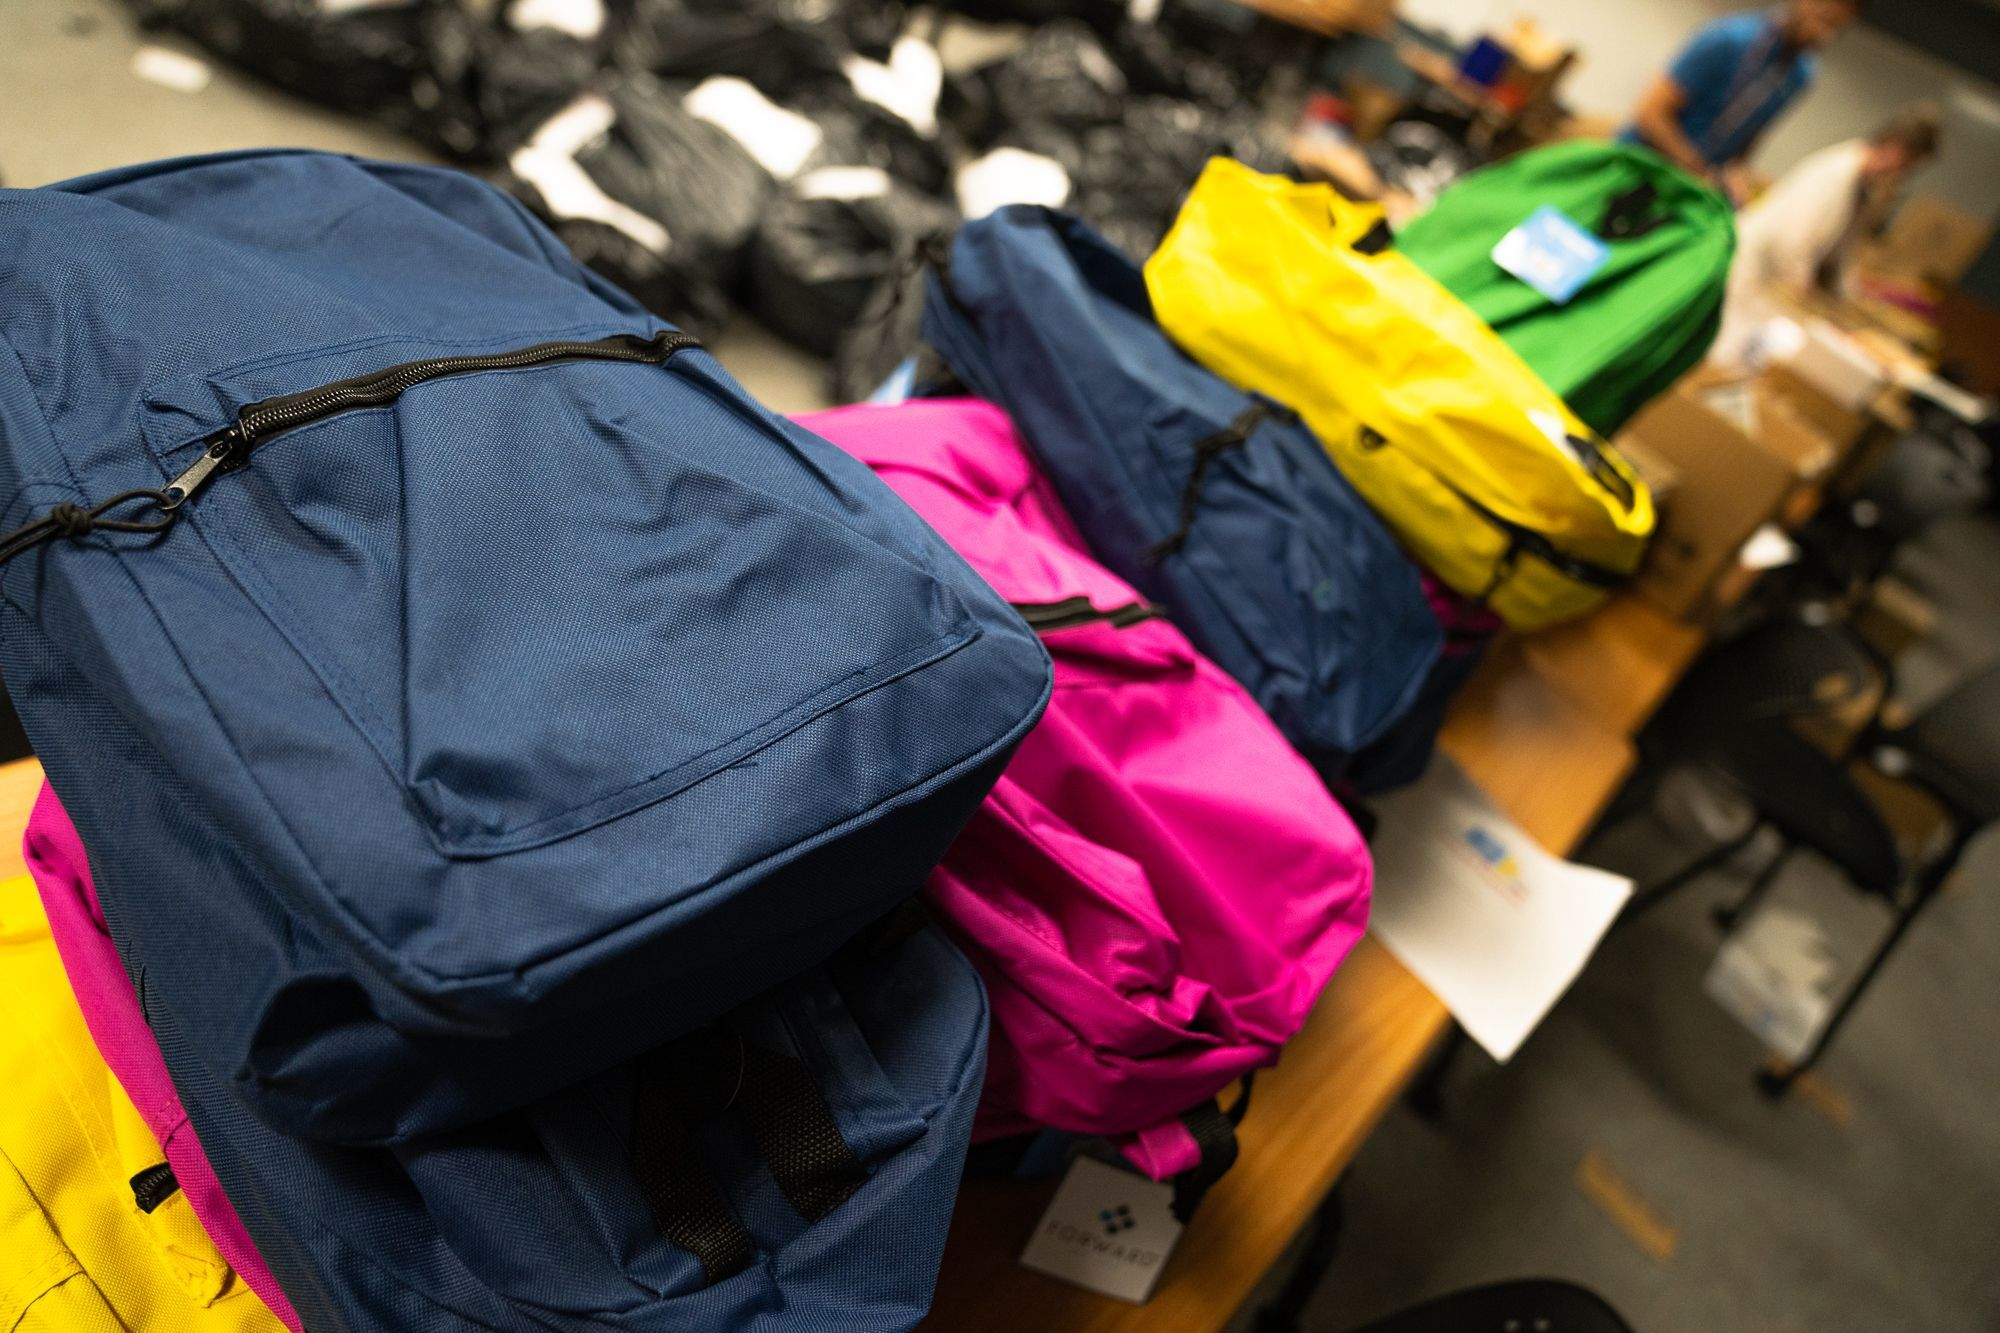 CCSF donates more than 1,700 backpacks full of supplies to CCSD schools